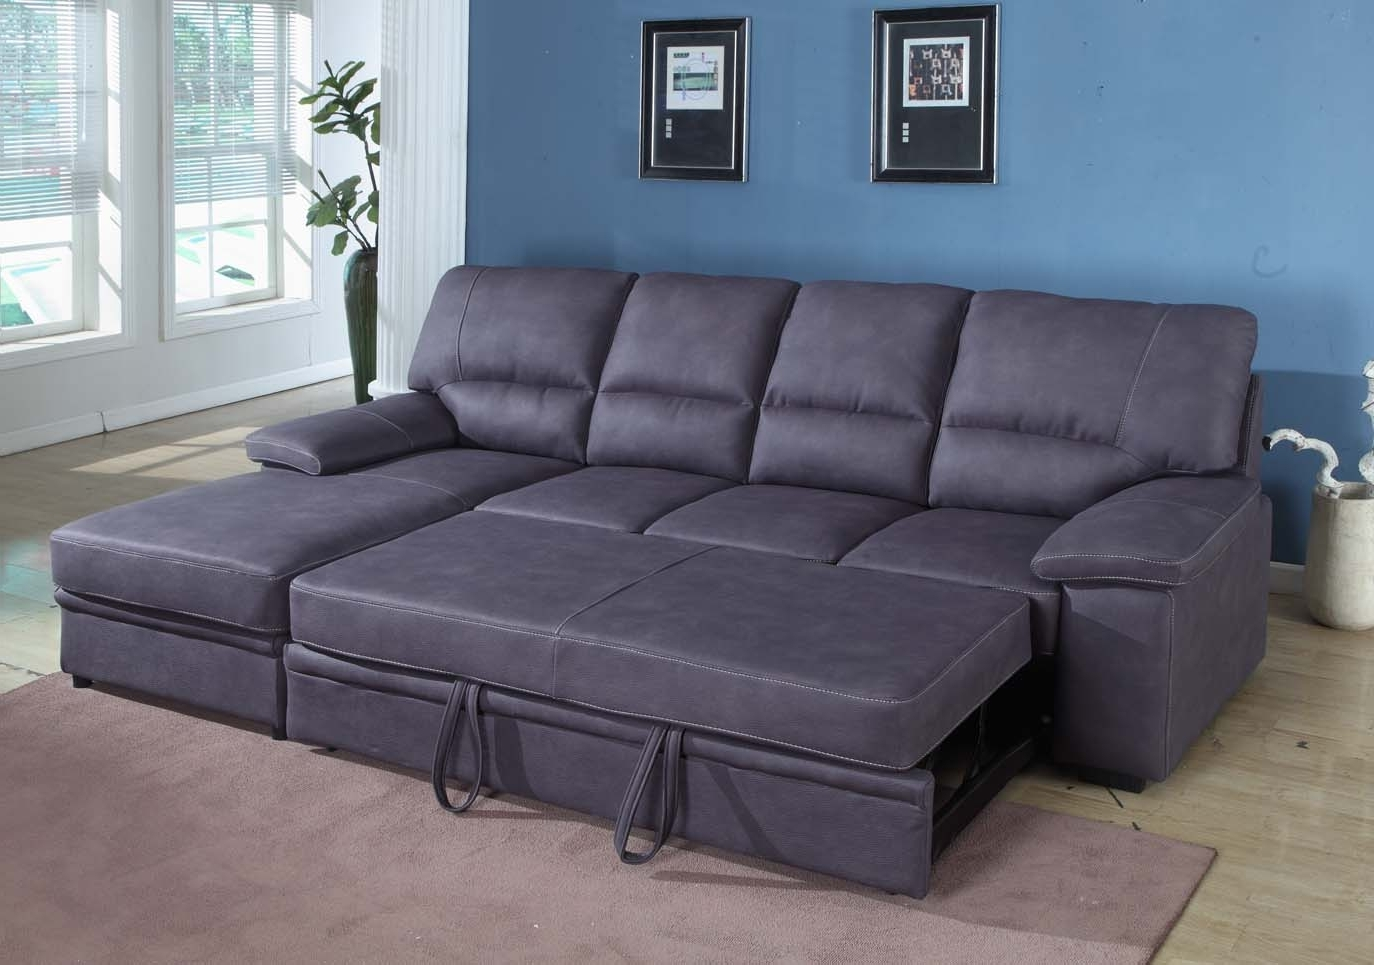 Best And Newest Loveseat Sectional With Chaise Apartment Size Sectional Sofa For Apartment Size Sectionals With Chaise (View 12 of 15)